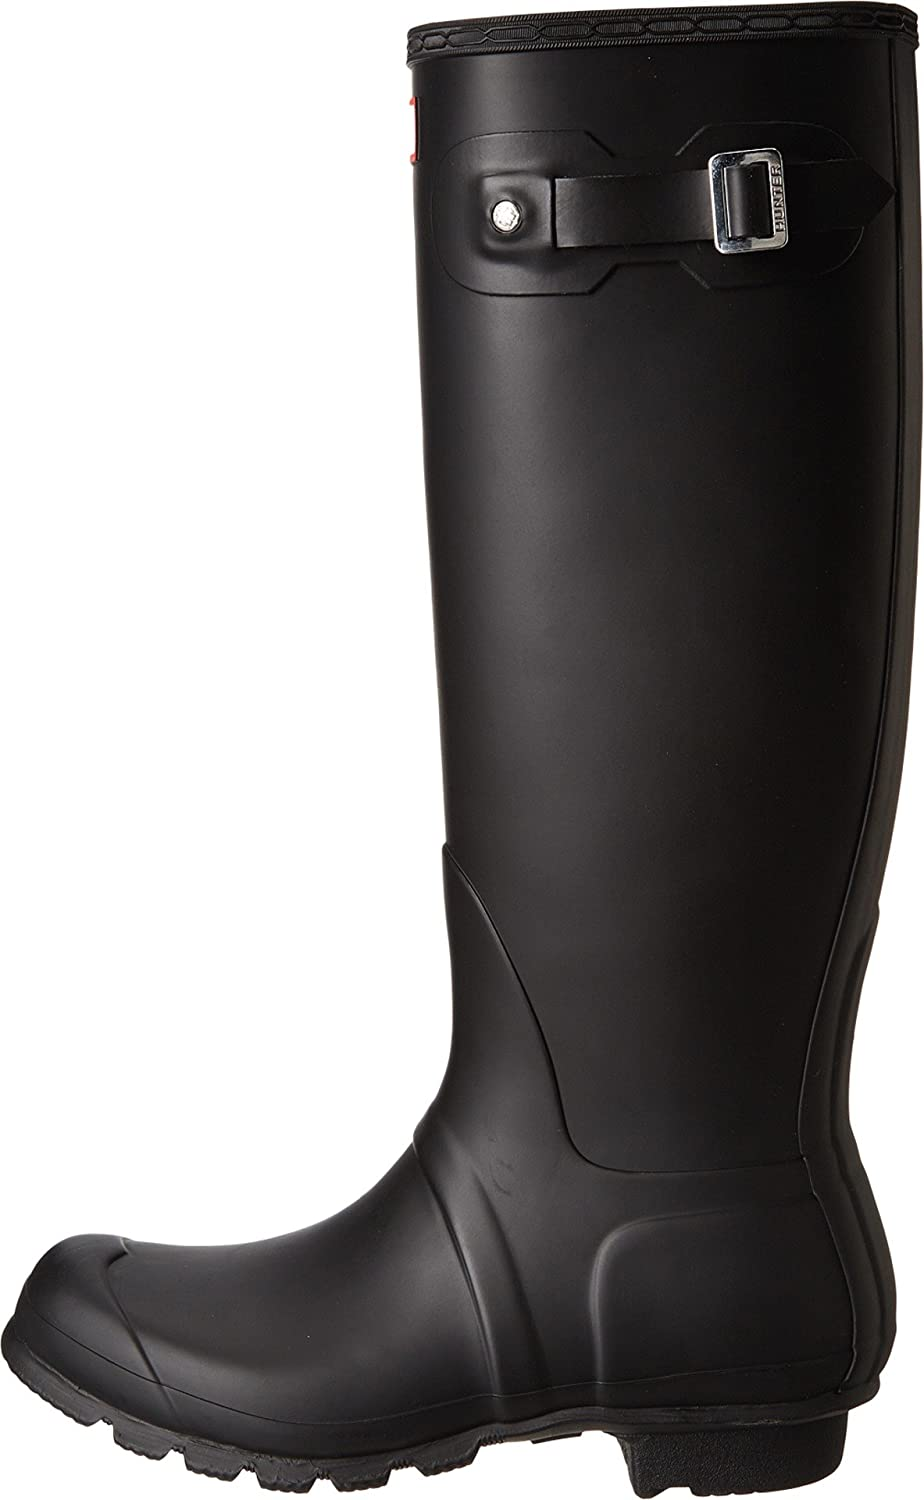 HUNTER Women's Original Tall